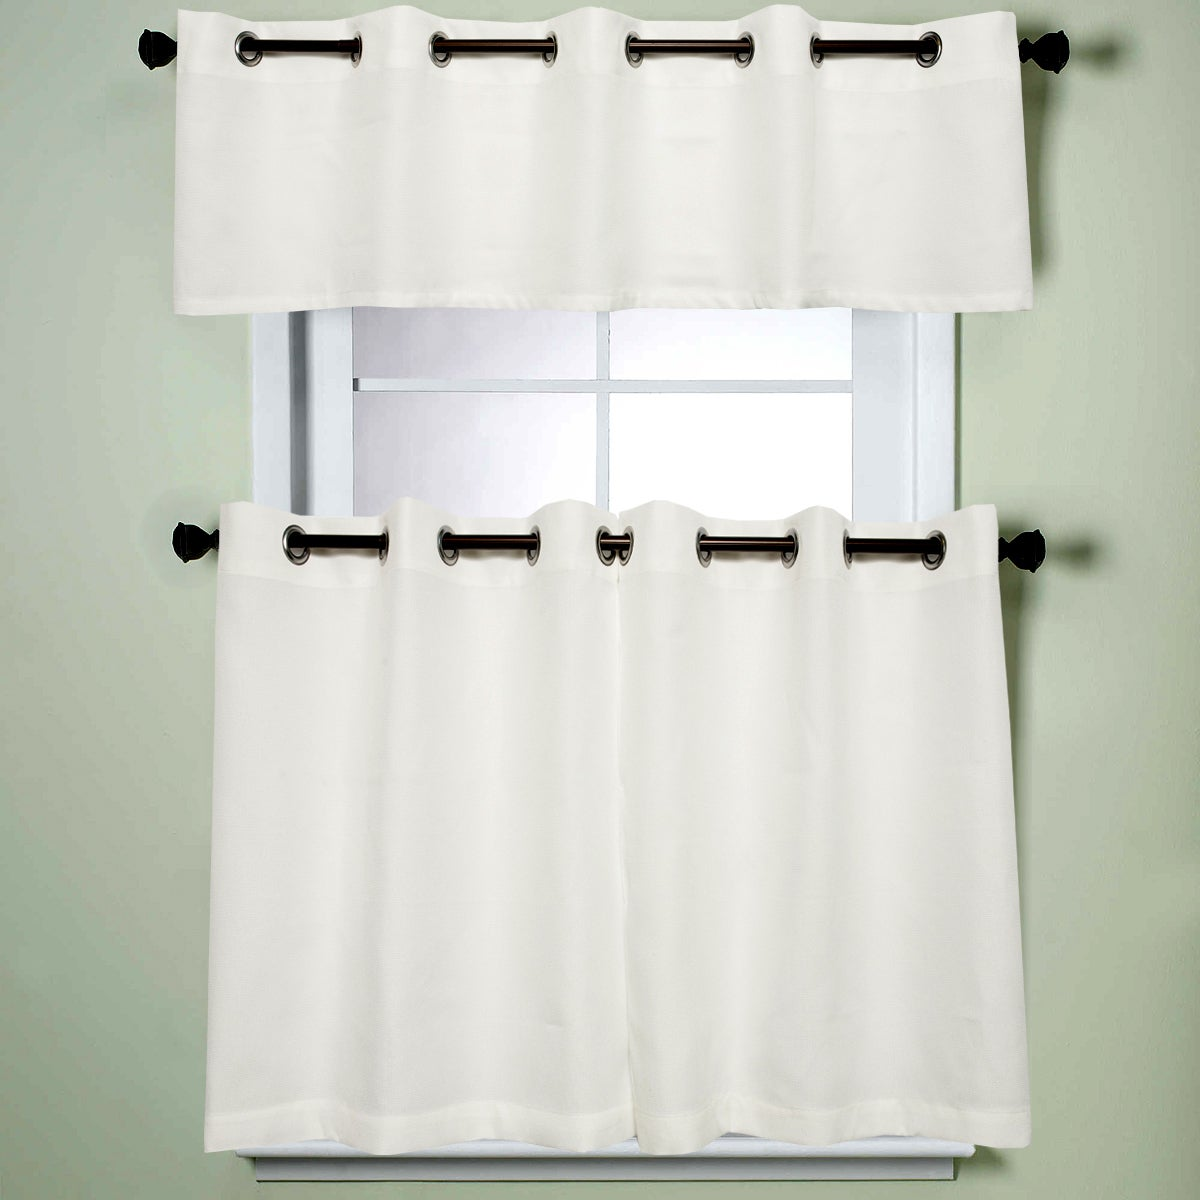 Modern Subtle Texture Solid White Kitchen Curtain Parts With Grommets Tier And Valance Options Overstock 10224892 Tier Pair 58 X 24